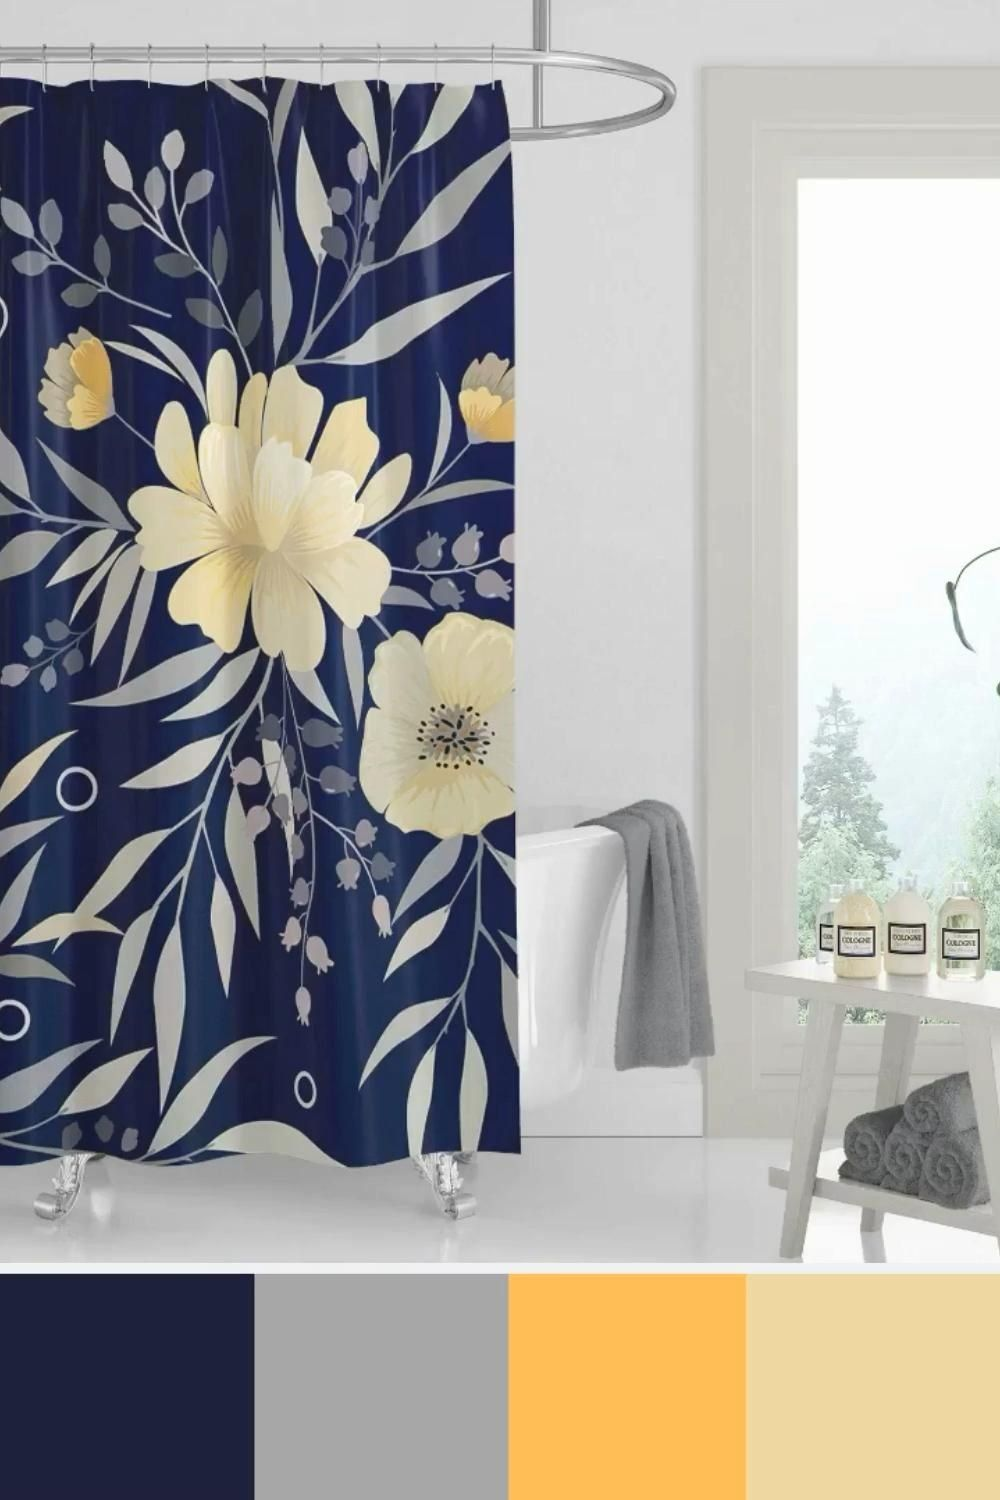 Home Decor Bathroom Colors Floral Shower Curtain For Navy Blue And Yellow Bathroom Ideas 1000 In 2020 Pink Bathroom Decor Blue Bathroom Decor Yellow Bathroom Decor